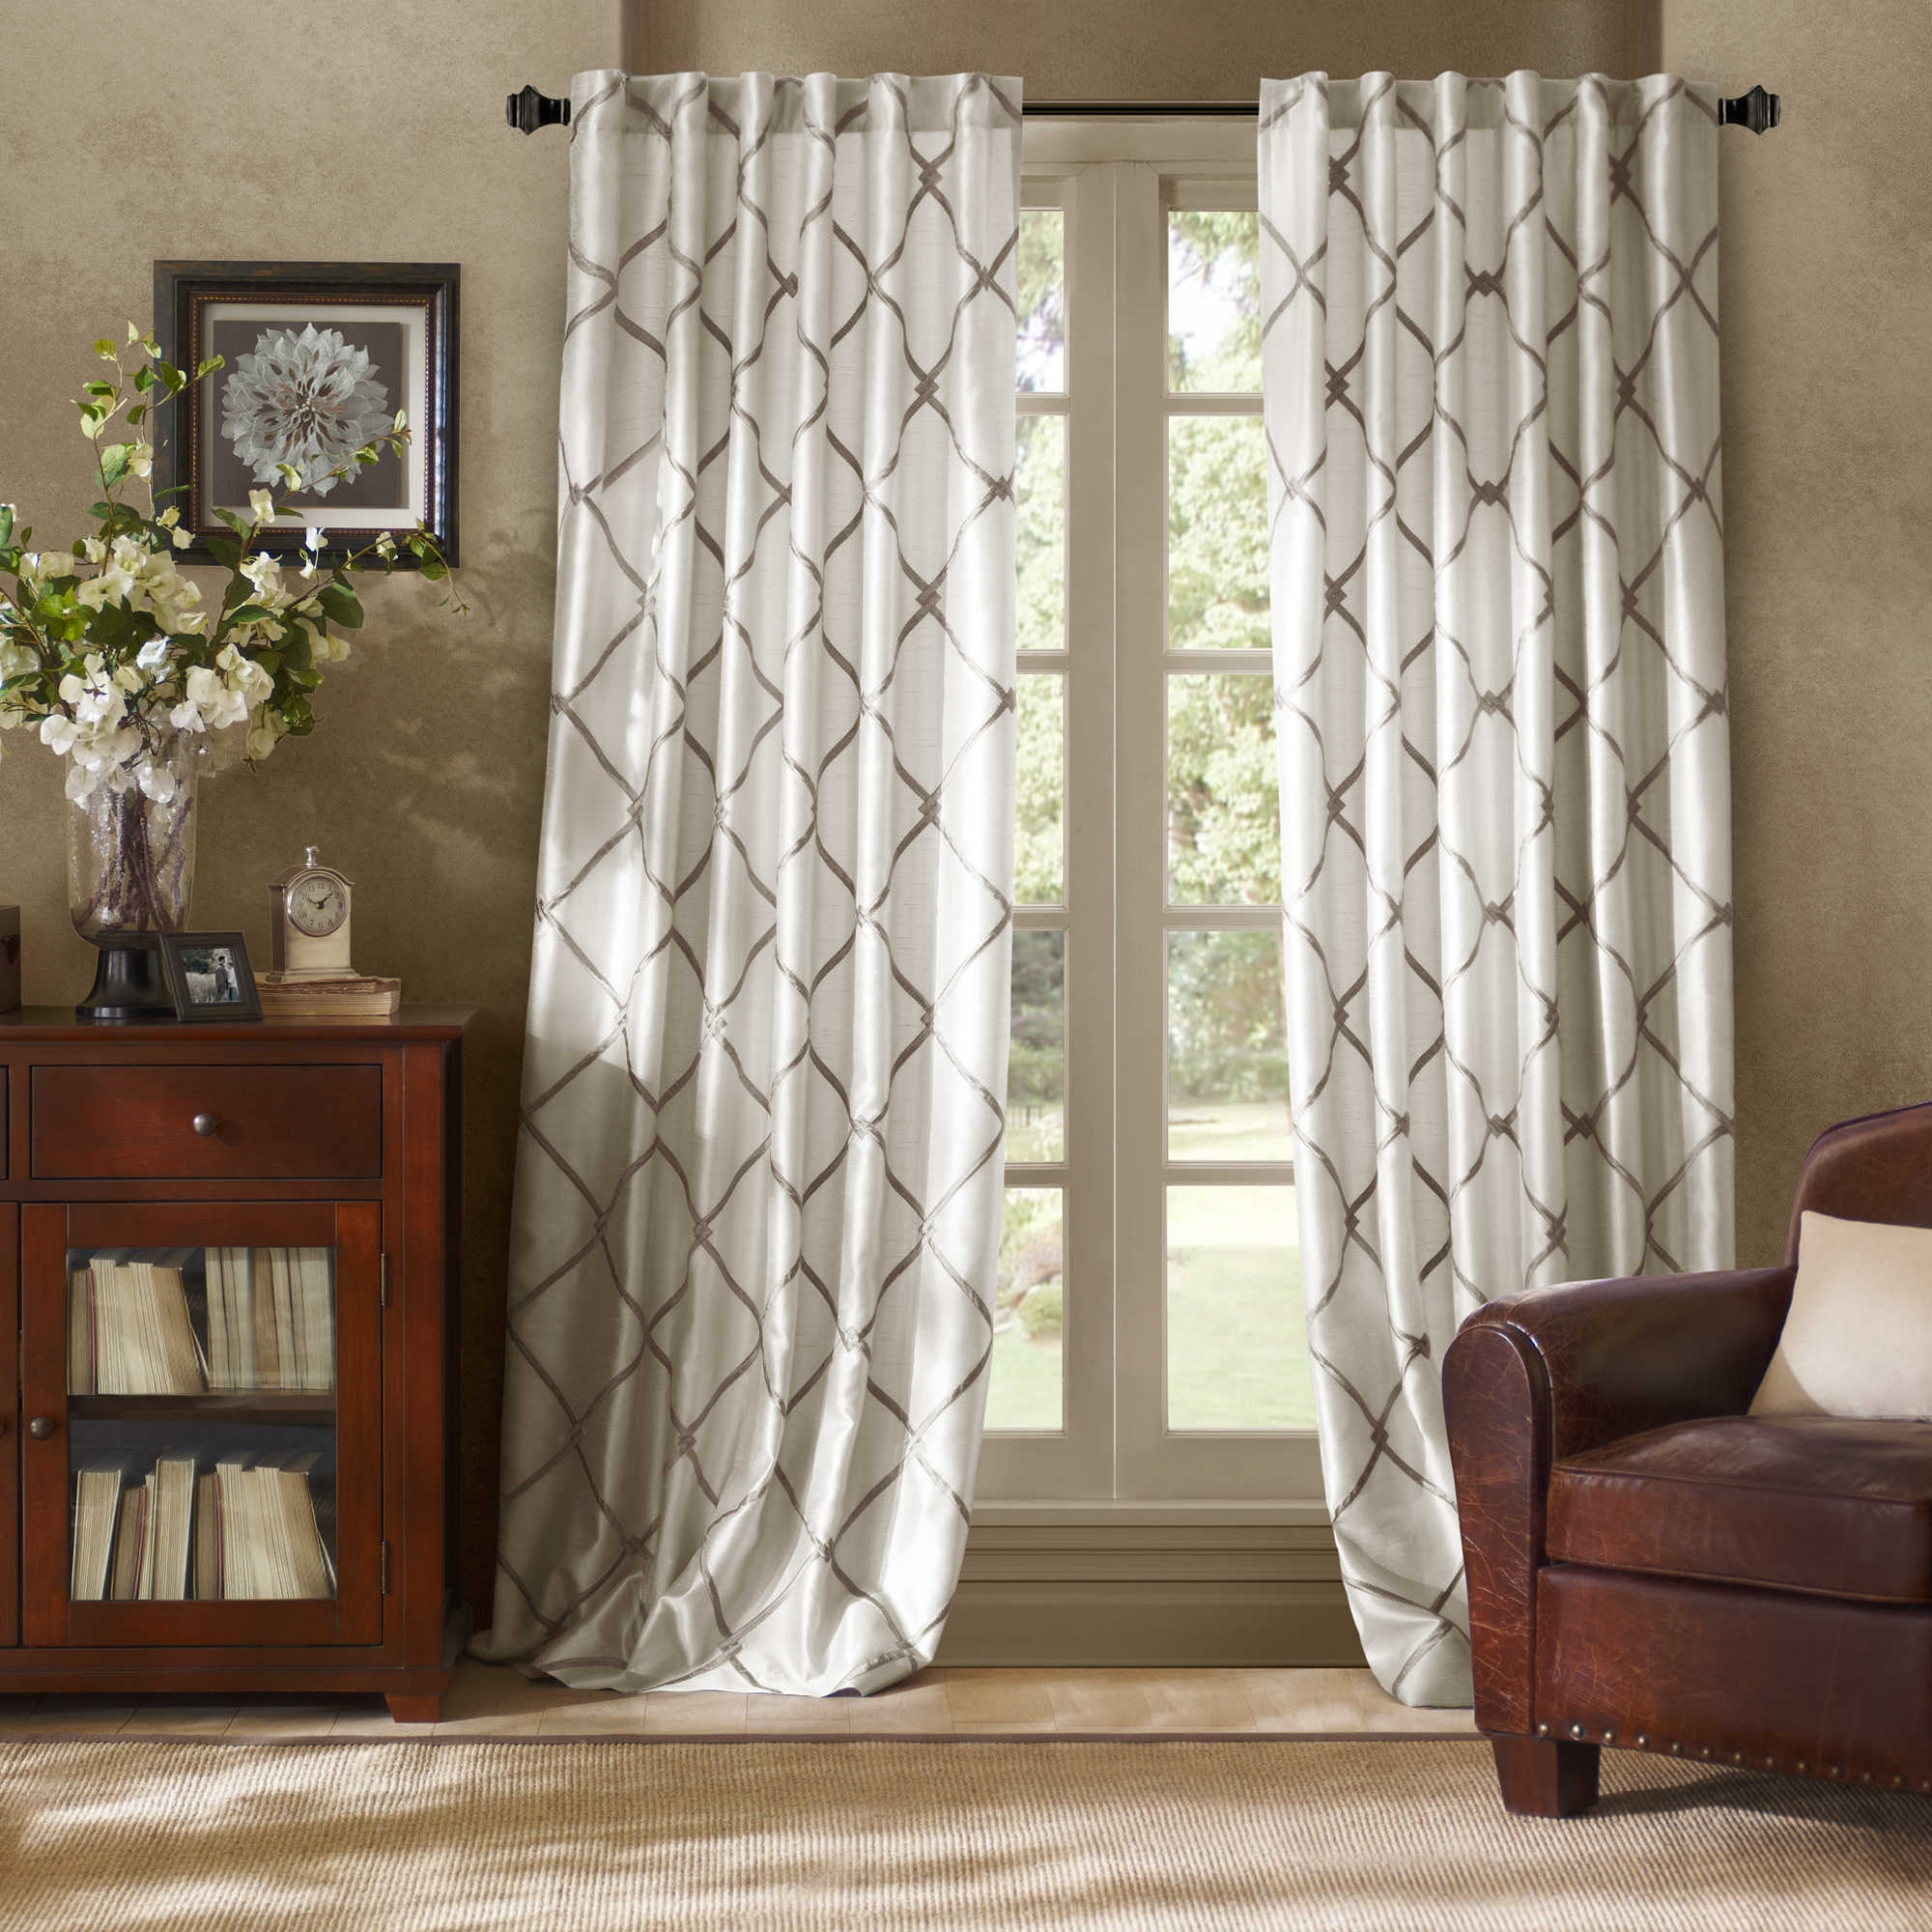 Curtains Short Curtain Panels Inspiration Window Curtain Panels In Pattern Curtain Panels (Image 7 of 25)